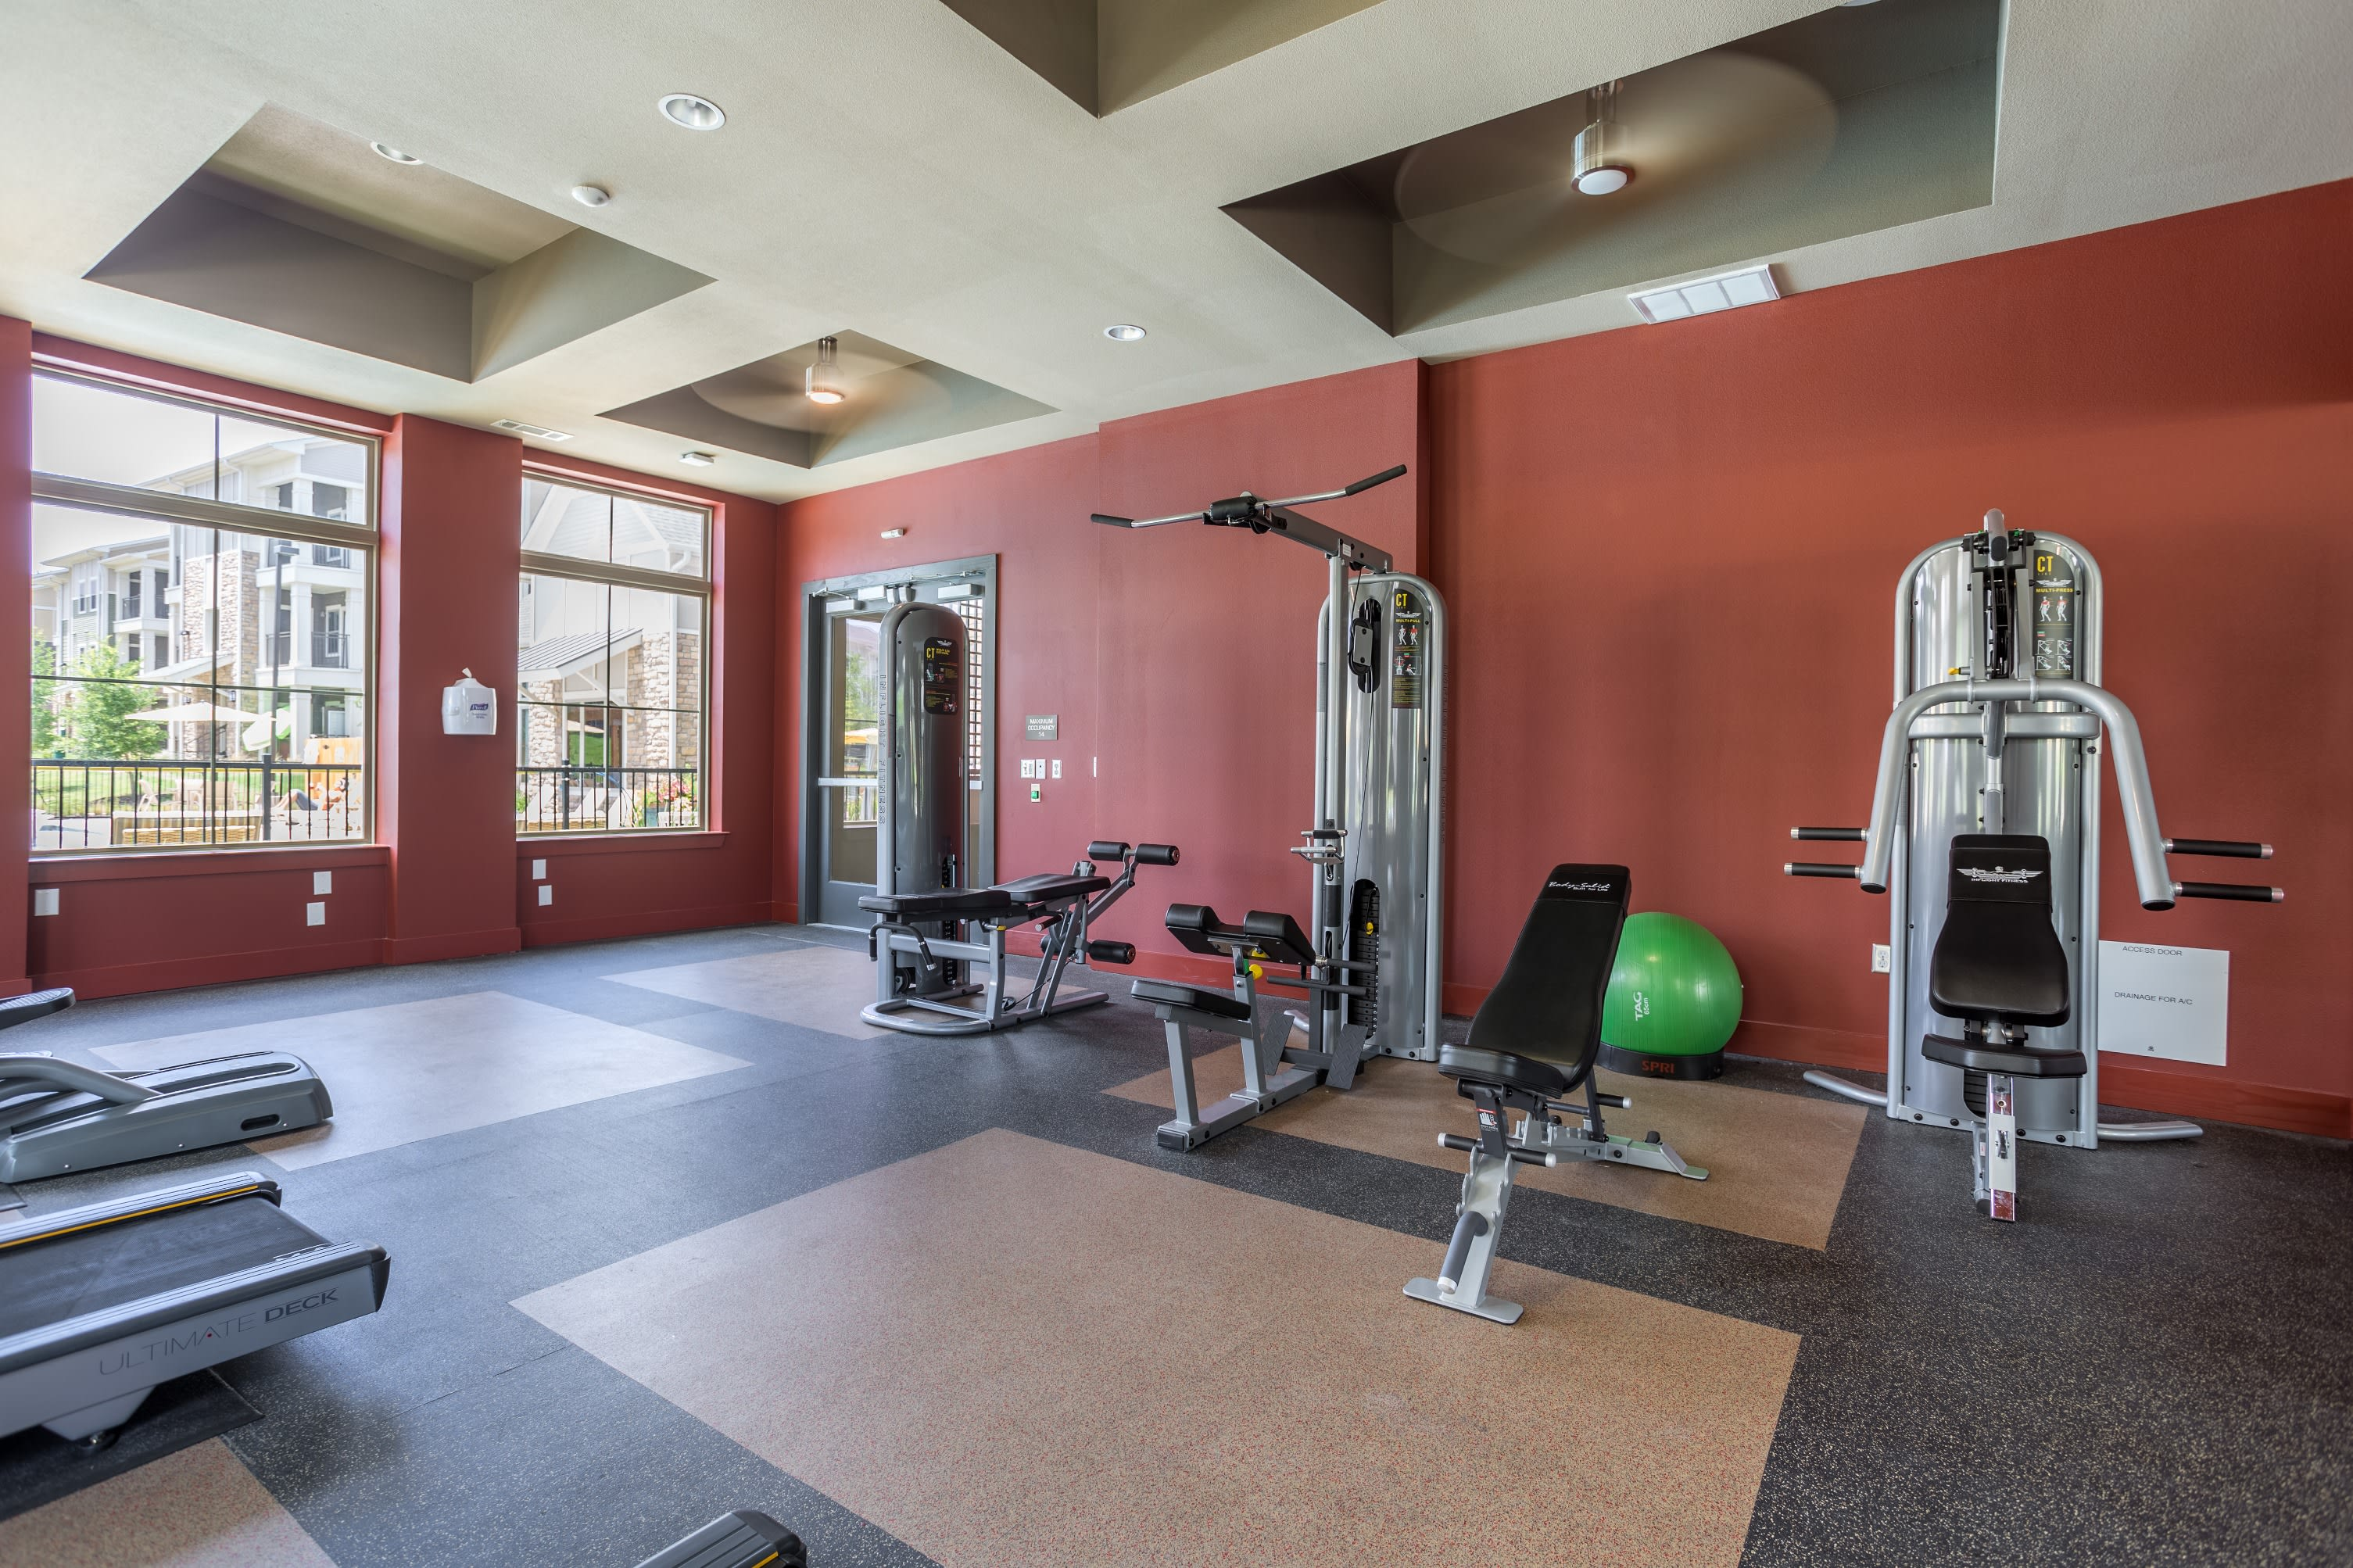 Fitness center and equipment at Encore 281 in San Antonio, Texas